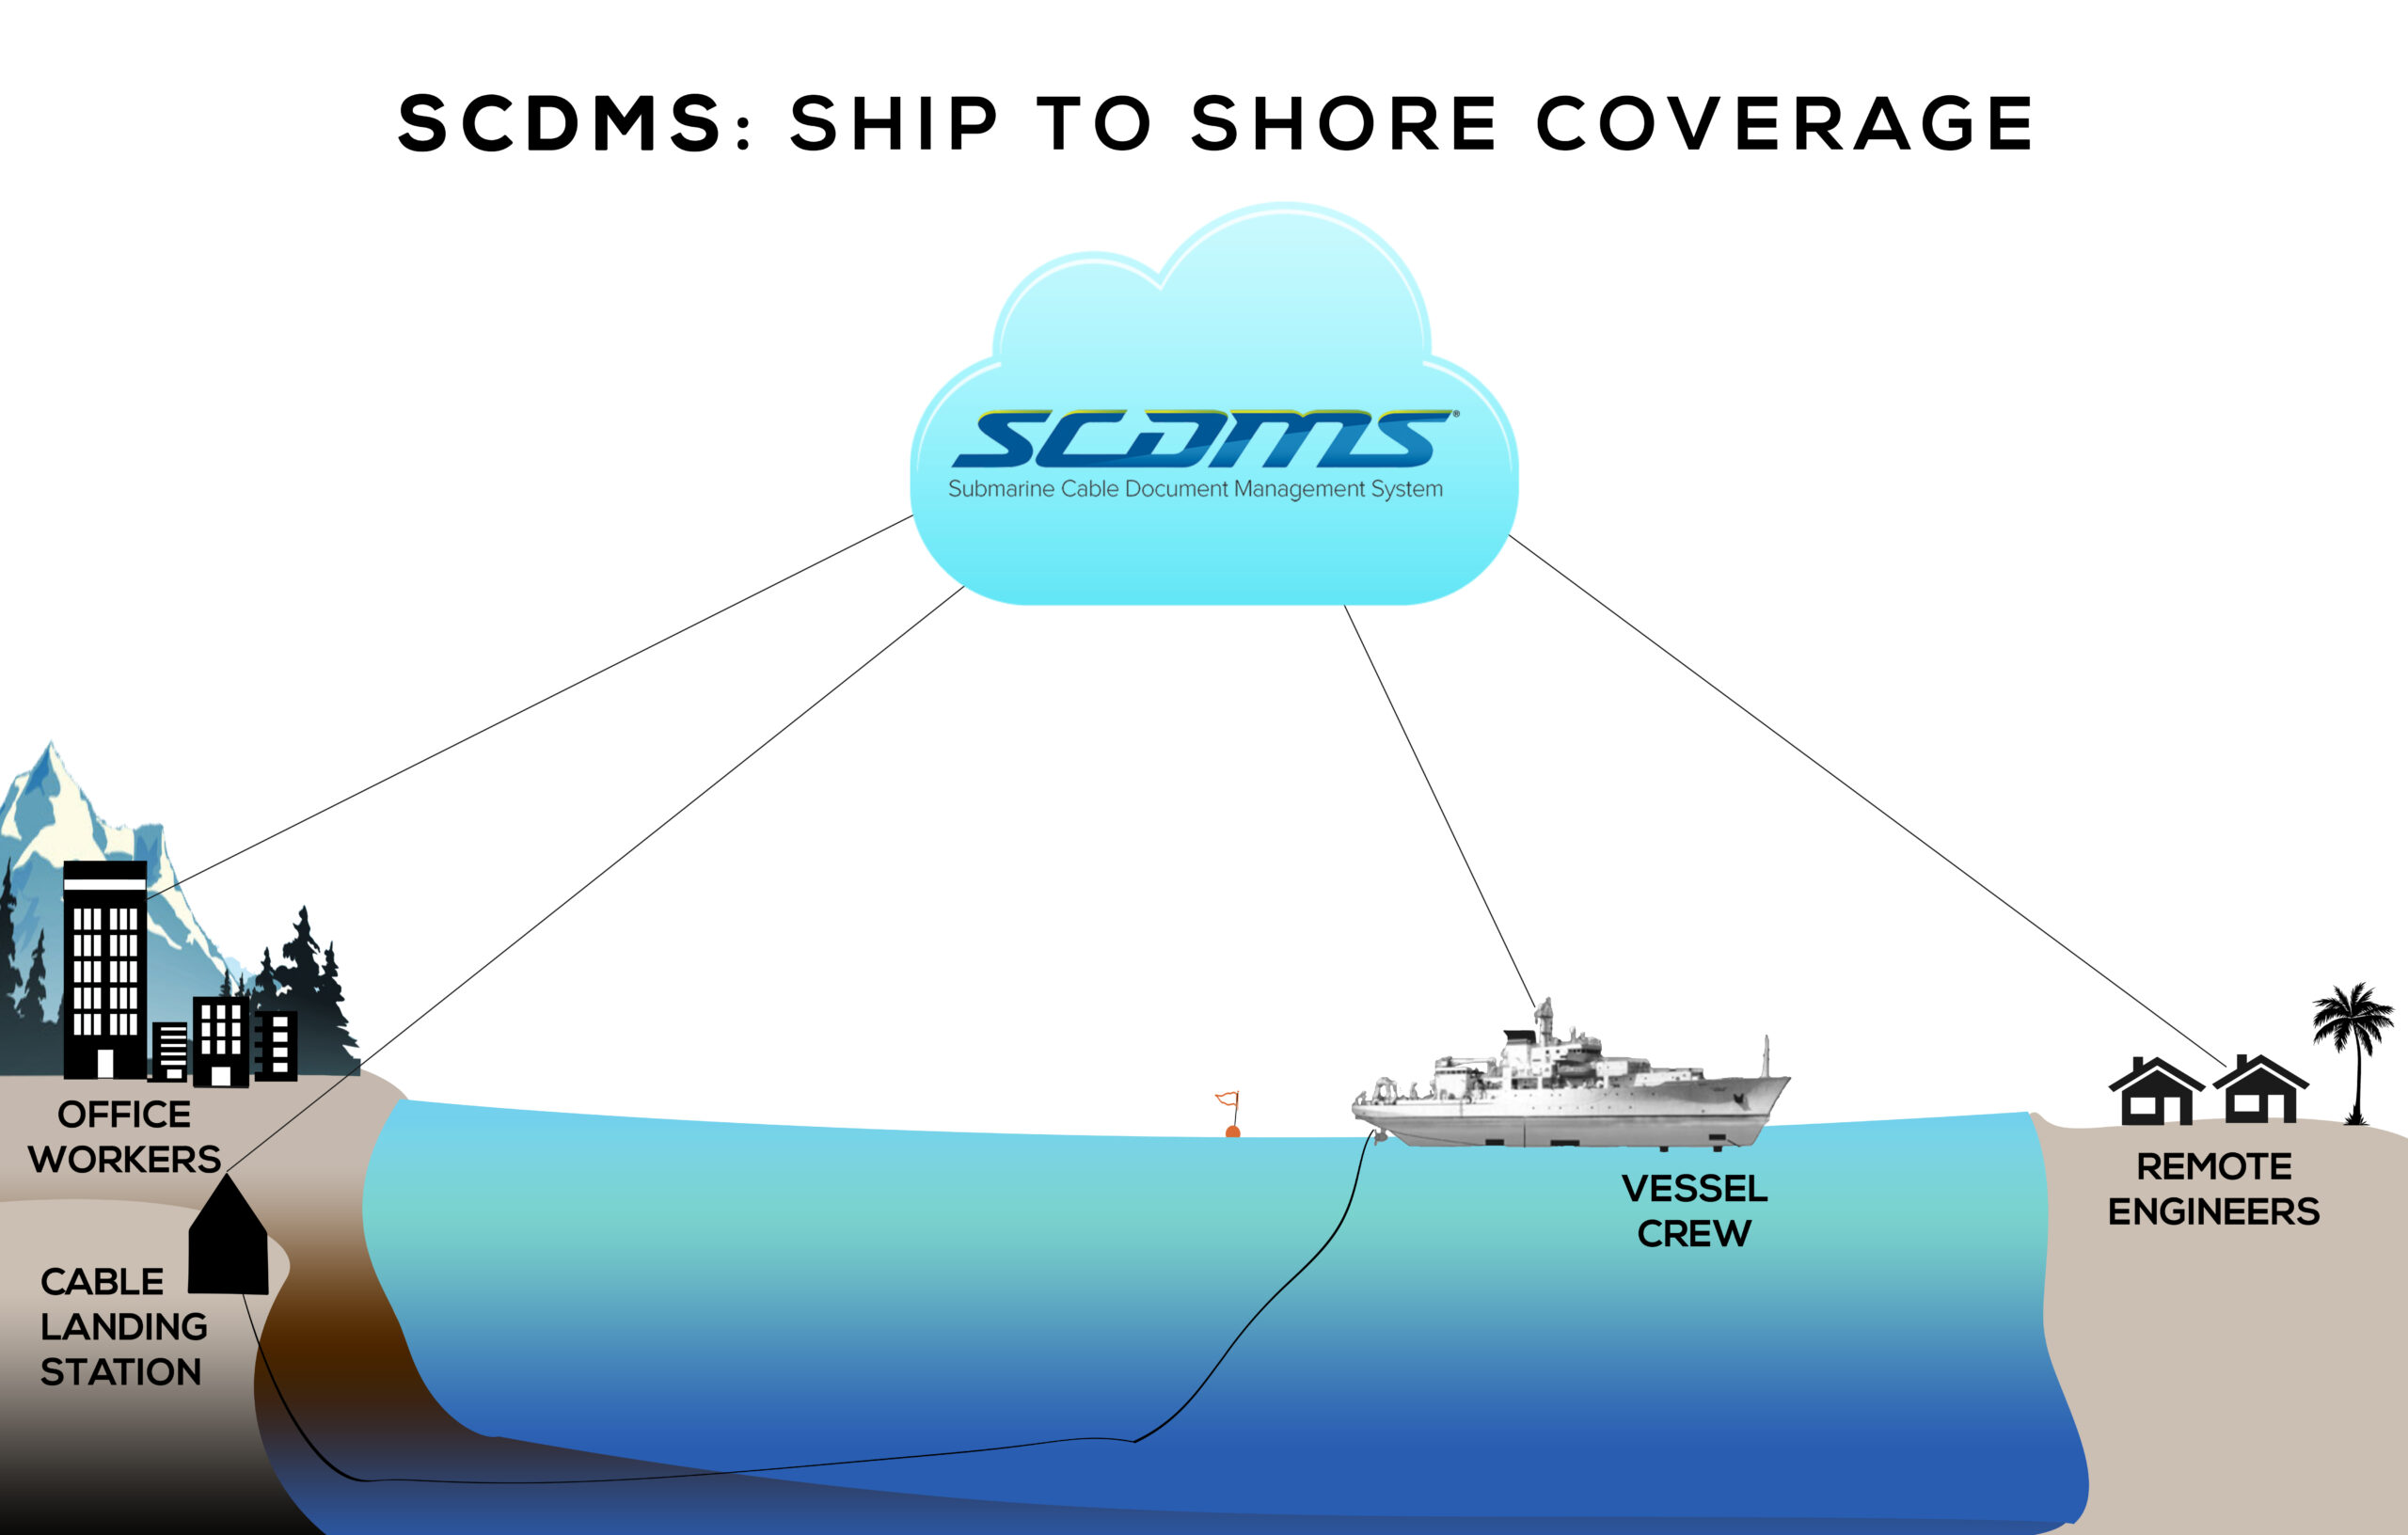 SCDMS SHIP TO SHORE COVERAGE